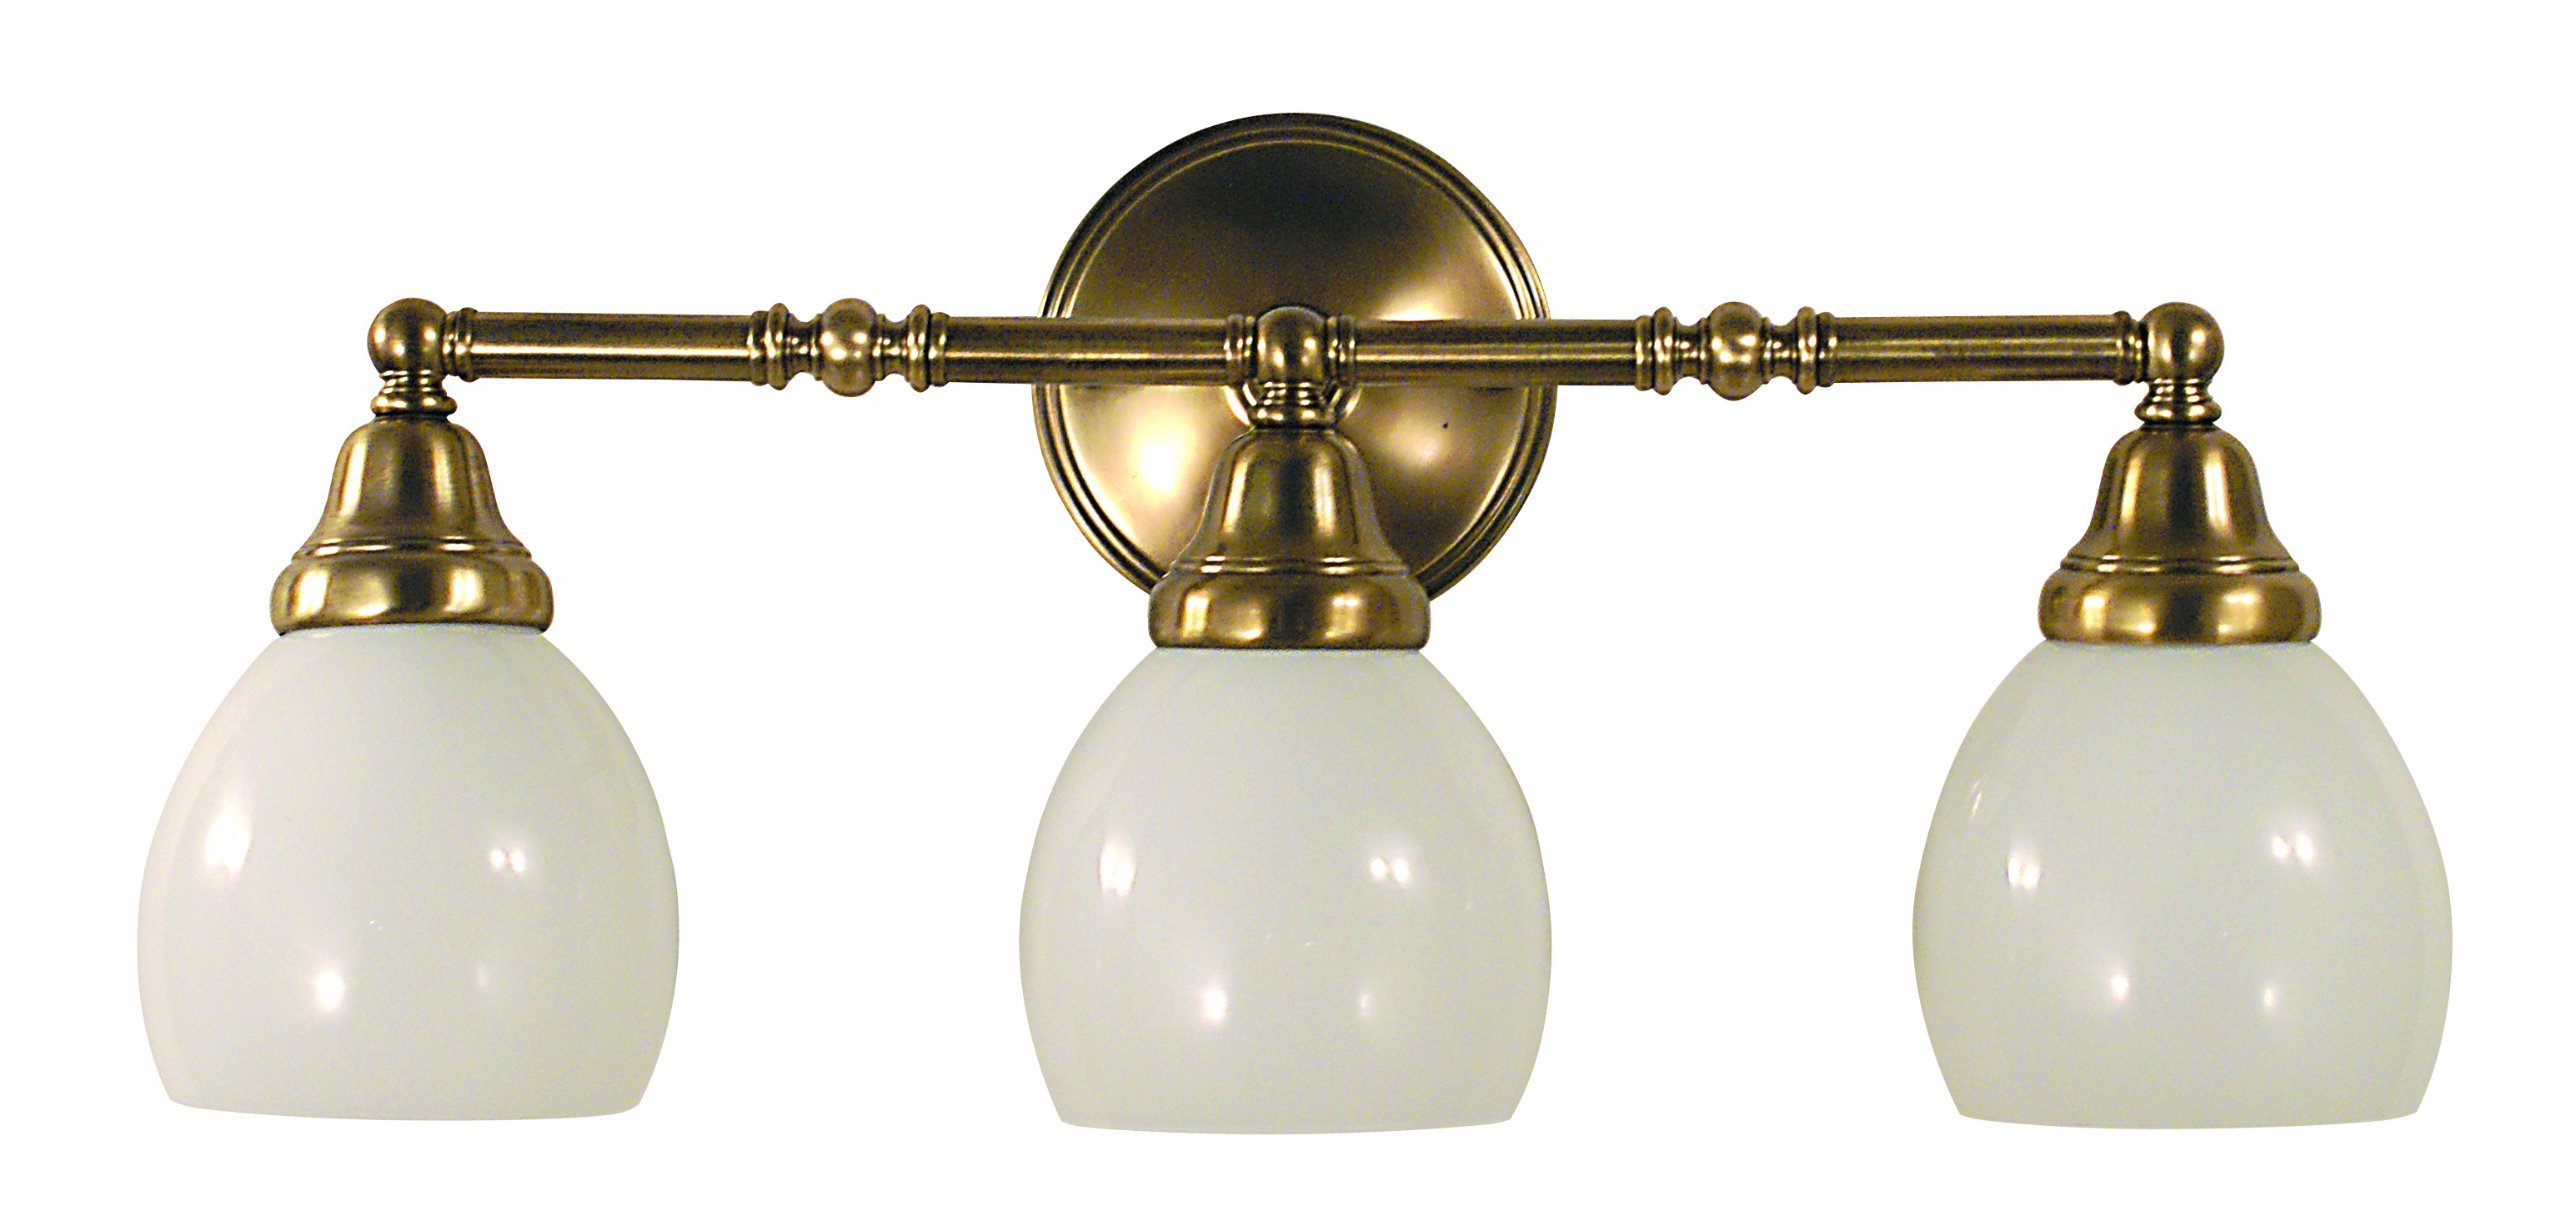 Framburg 2429 AB Sheraton 3-Light Vanity Fixture with White Opal Glass Shades, Antique Brass